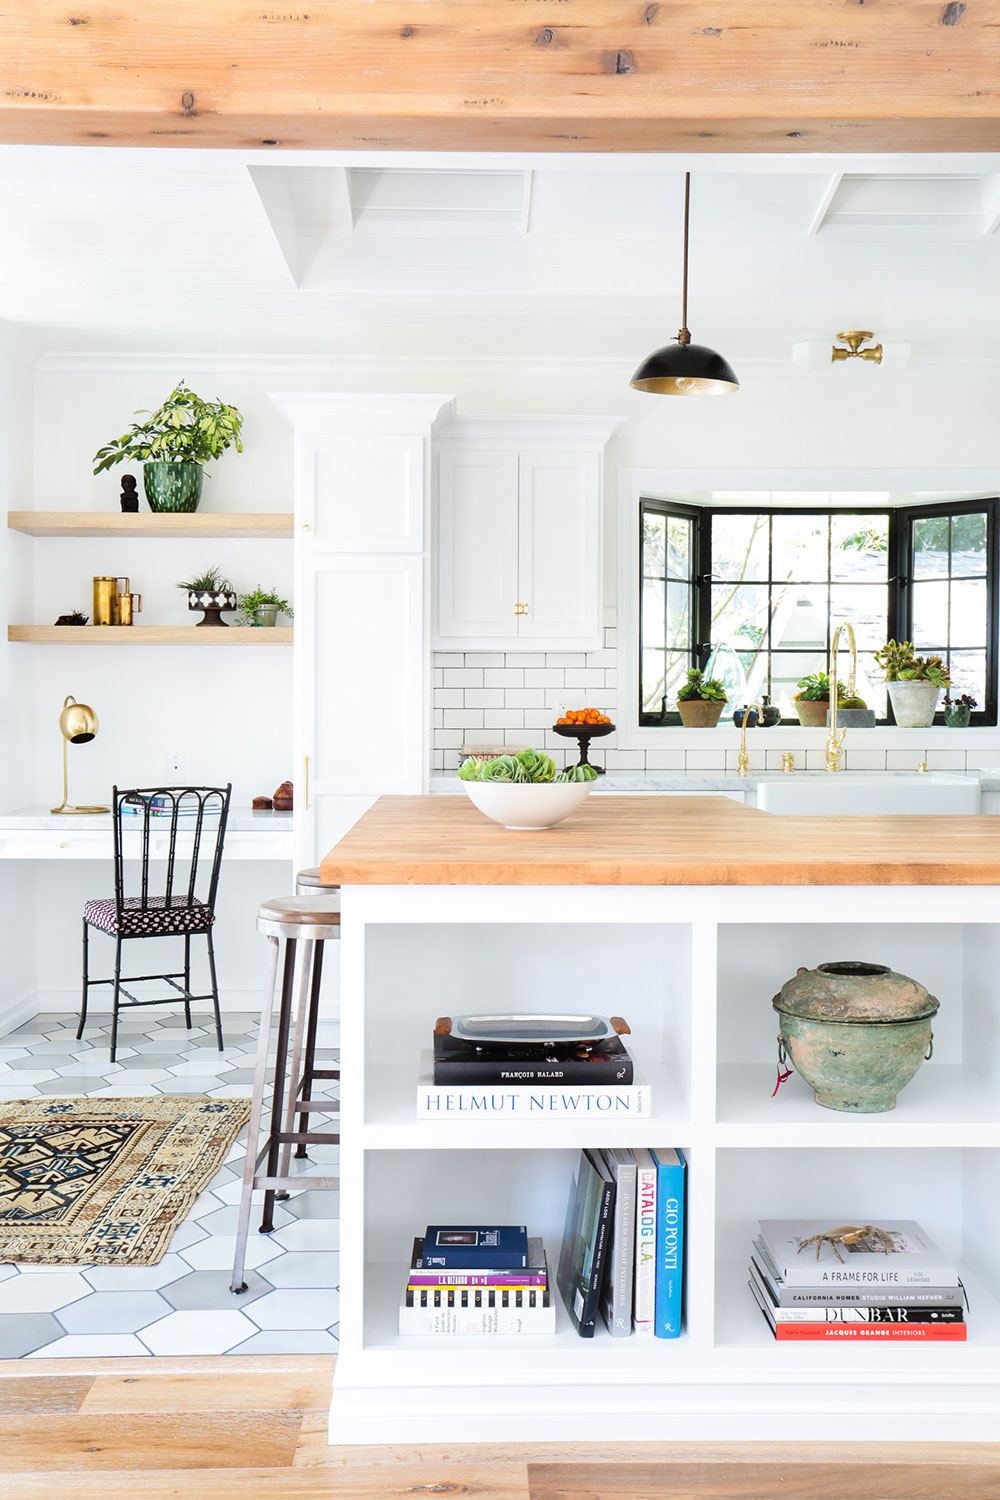 KITCHEN ENVY: INSPIRATION FOR MY NEW KITCHEN... - So I made a big decision last week and that decision is to move forward with a facelift of my current kitchen. I've went back and forth about this project for a while and I'm getting serious about it now. By